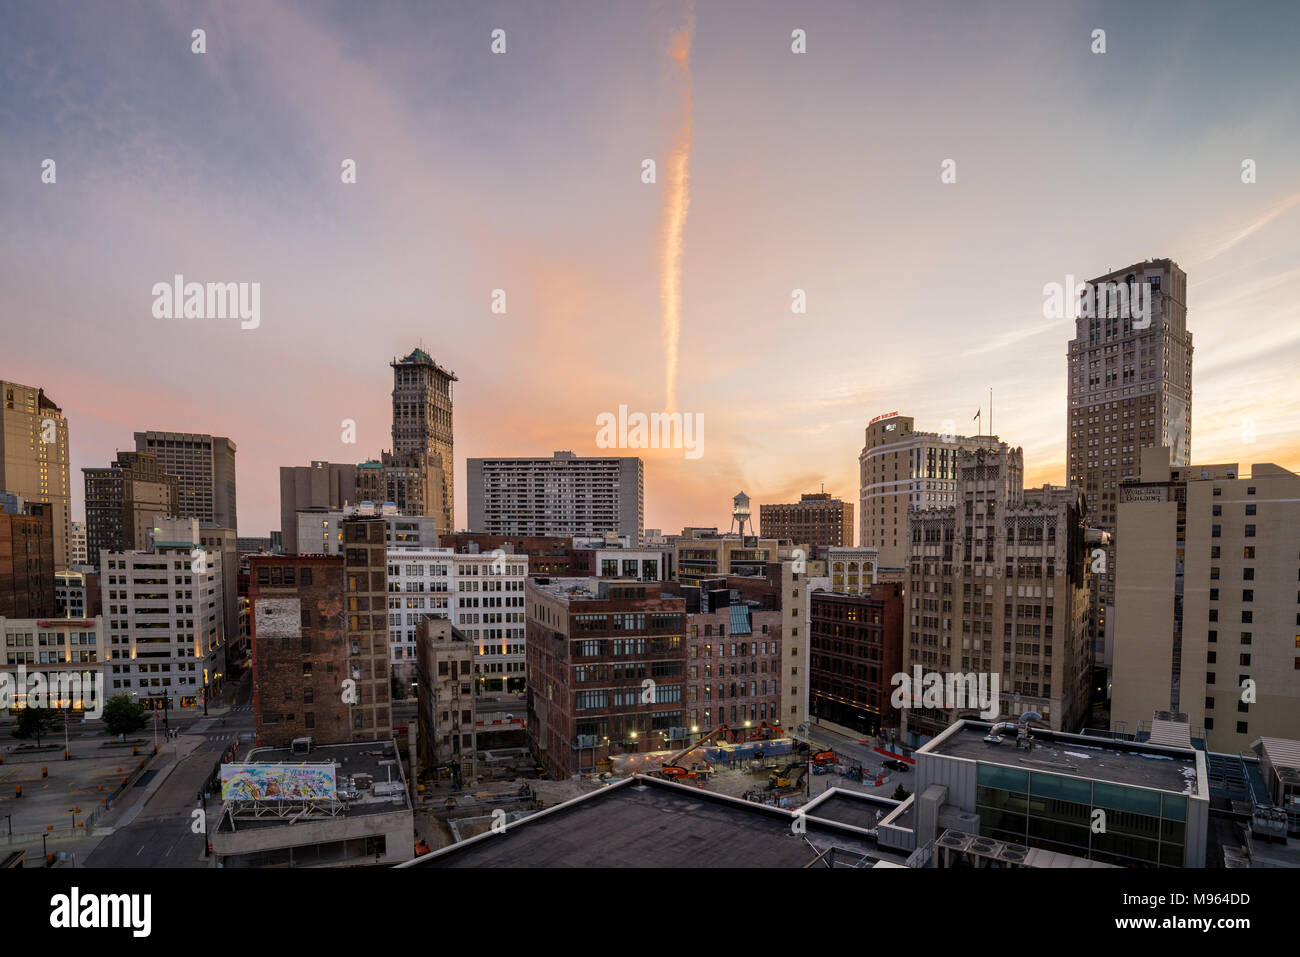 View of downtown Detroit, USA from above - Stock Image